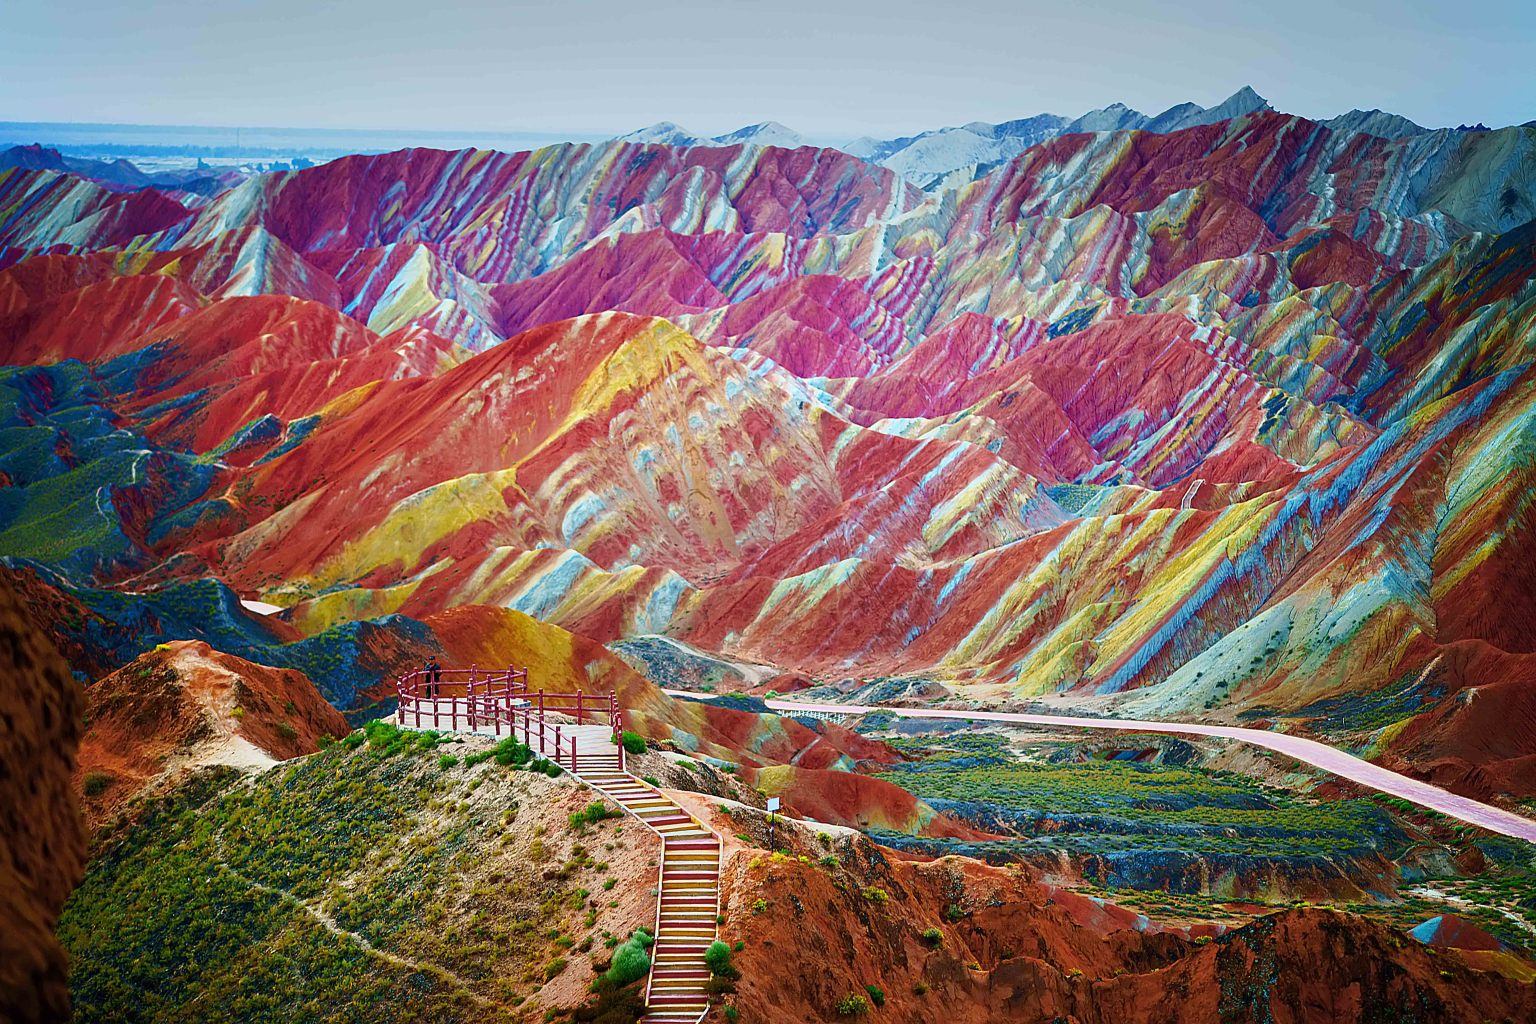 Amazing Zhangye Danxia Landform In China